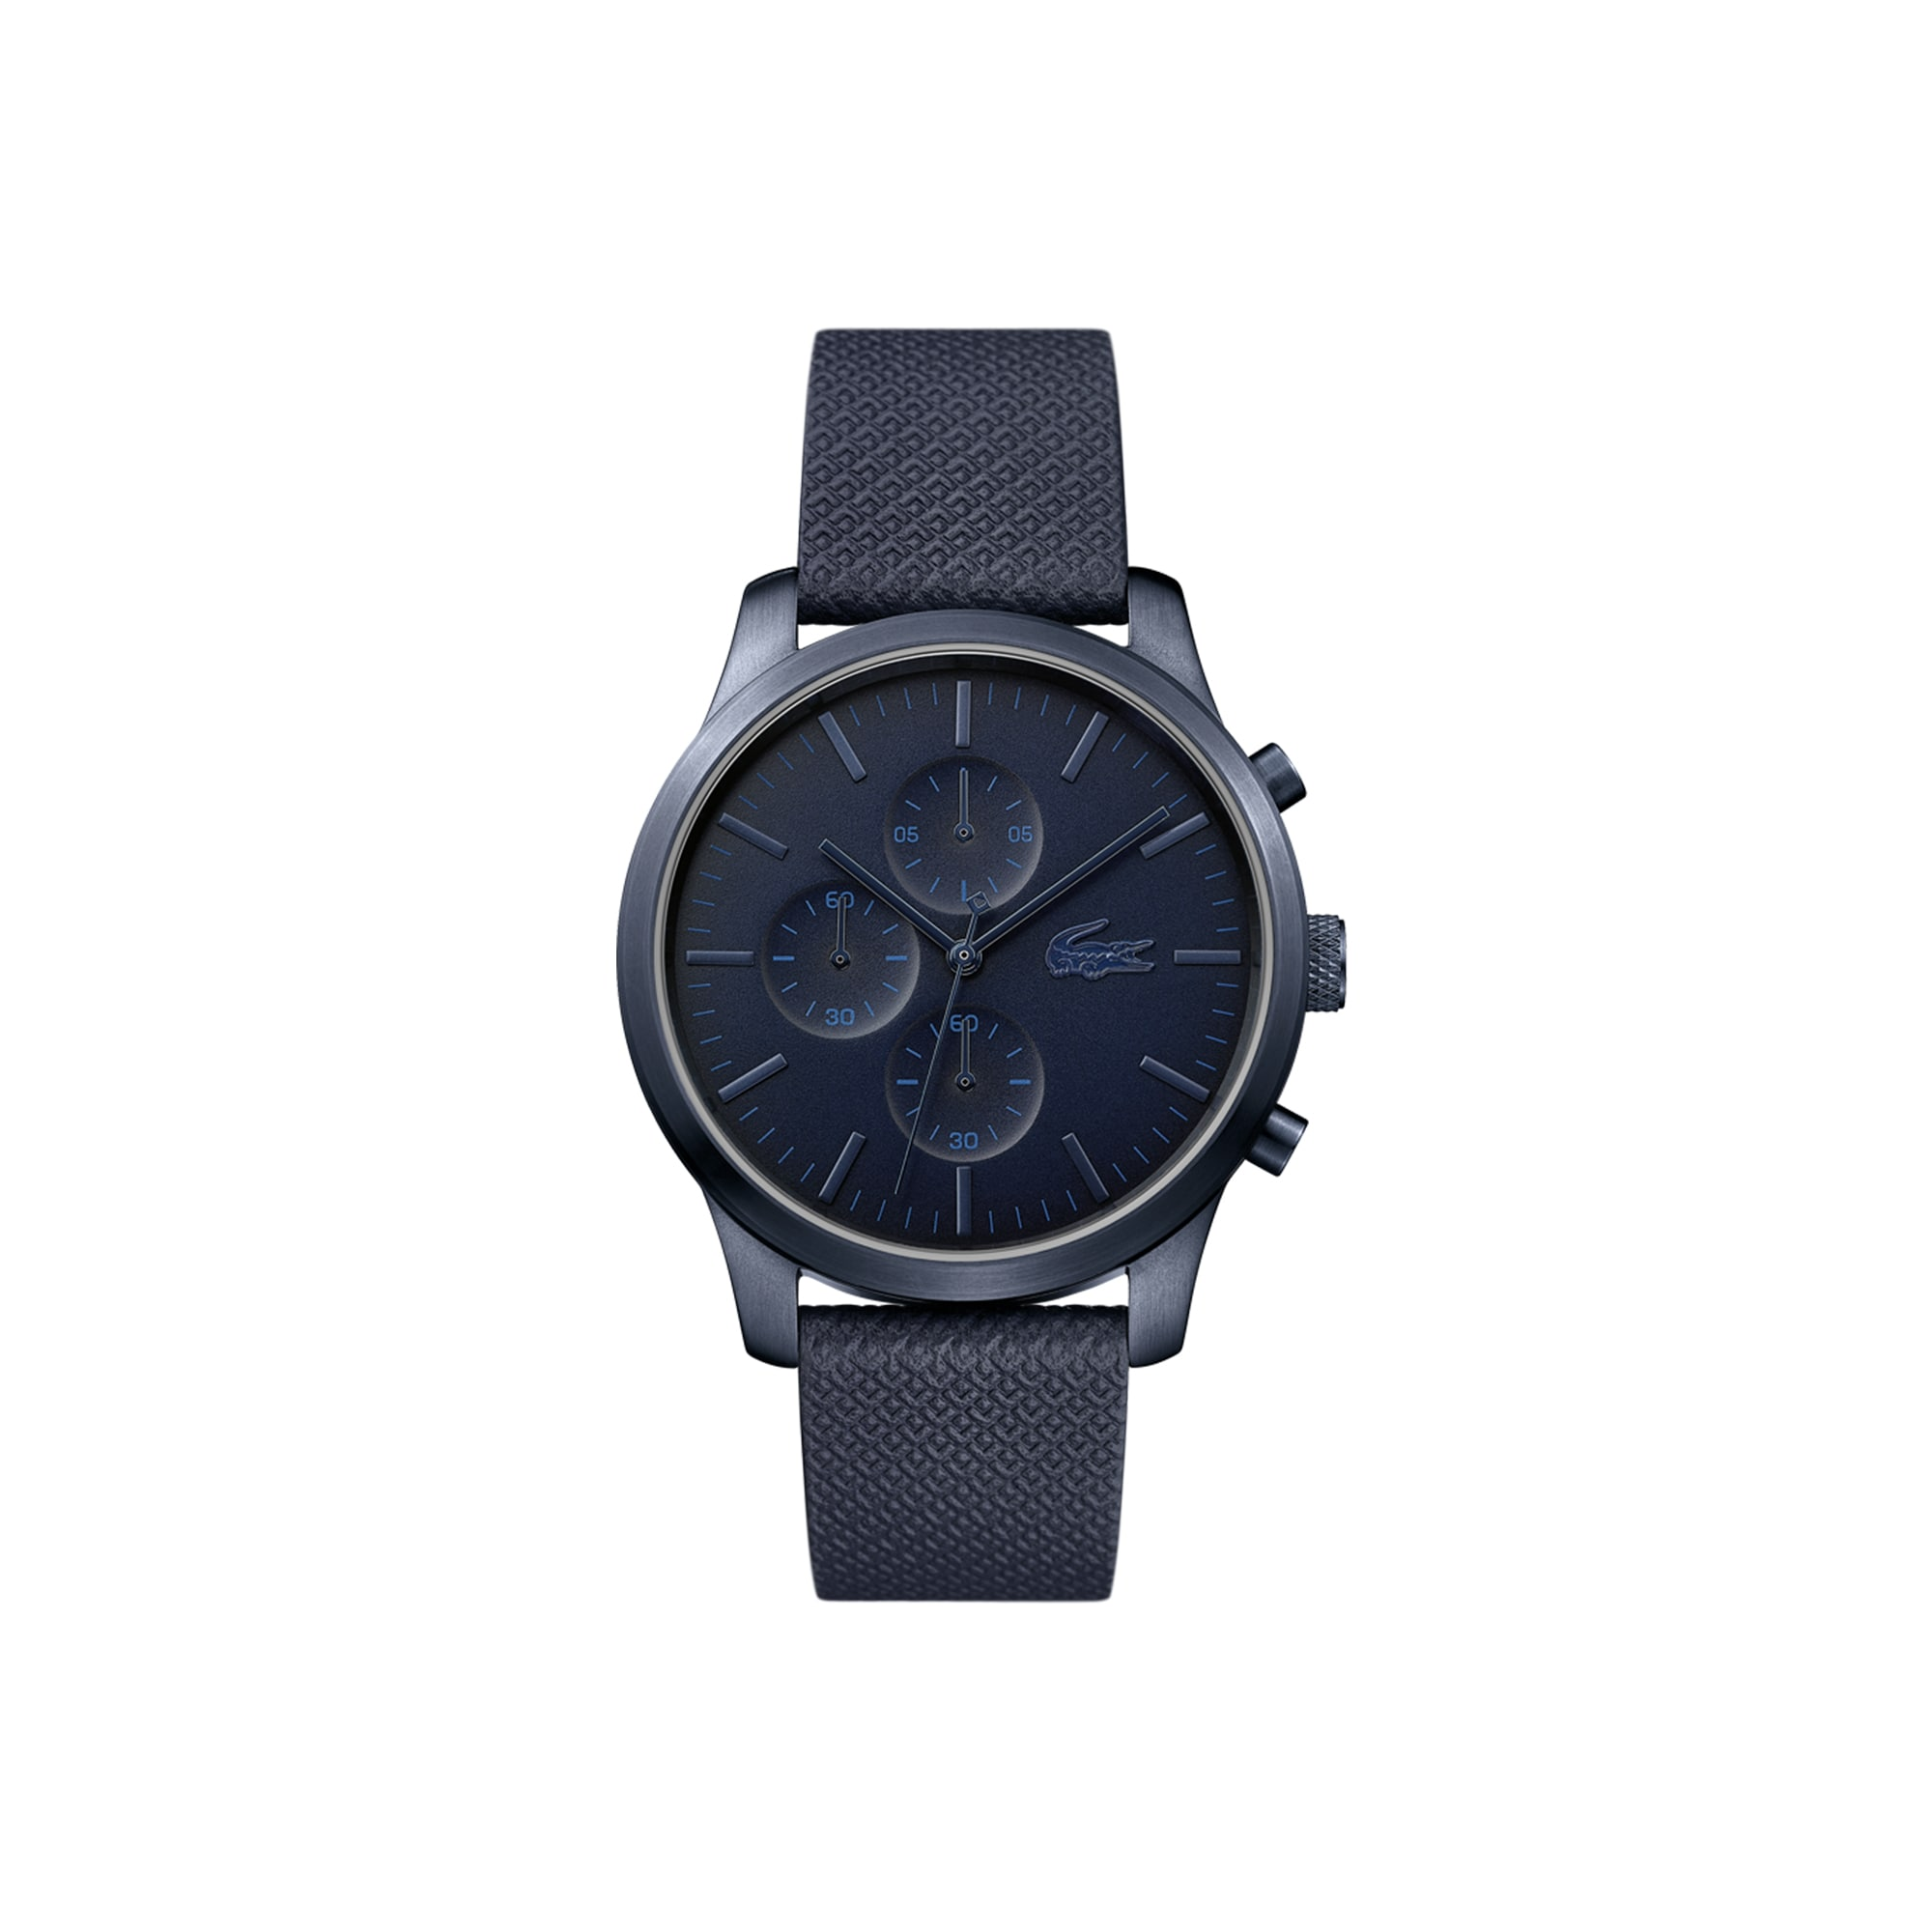 Men's Lacoste 12.12 Chronograph Watch 85th Anniversary with Blue Embossed Leather Strap